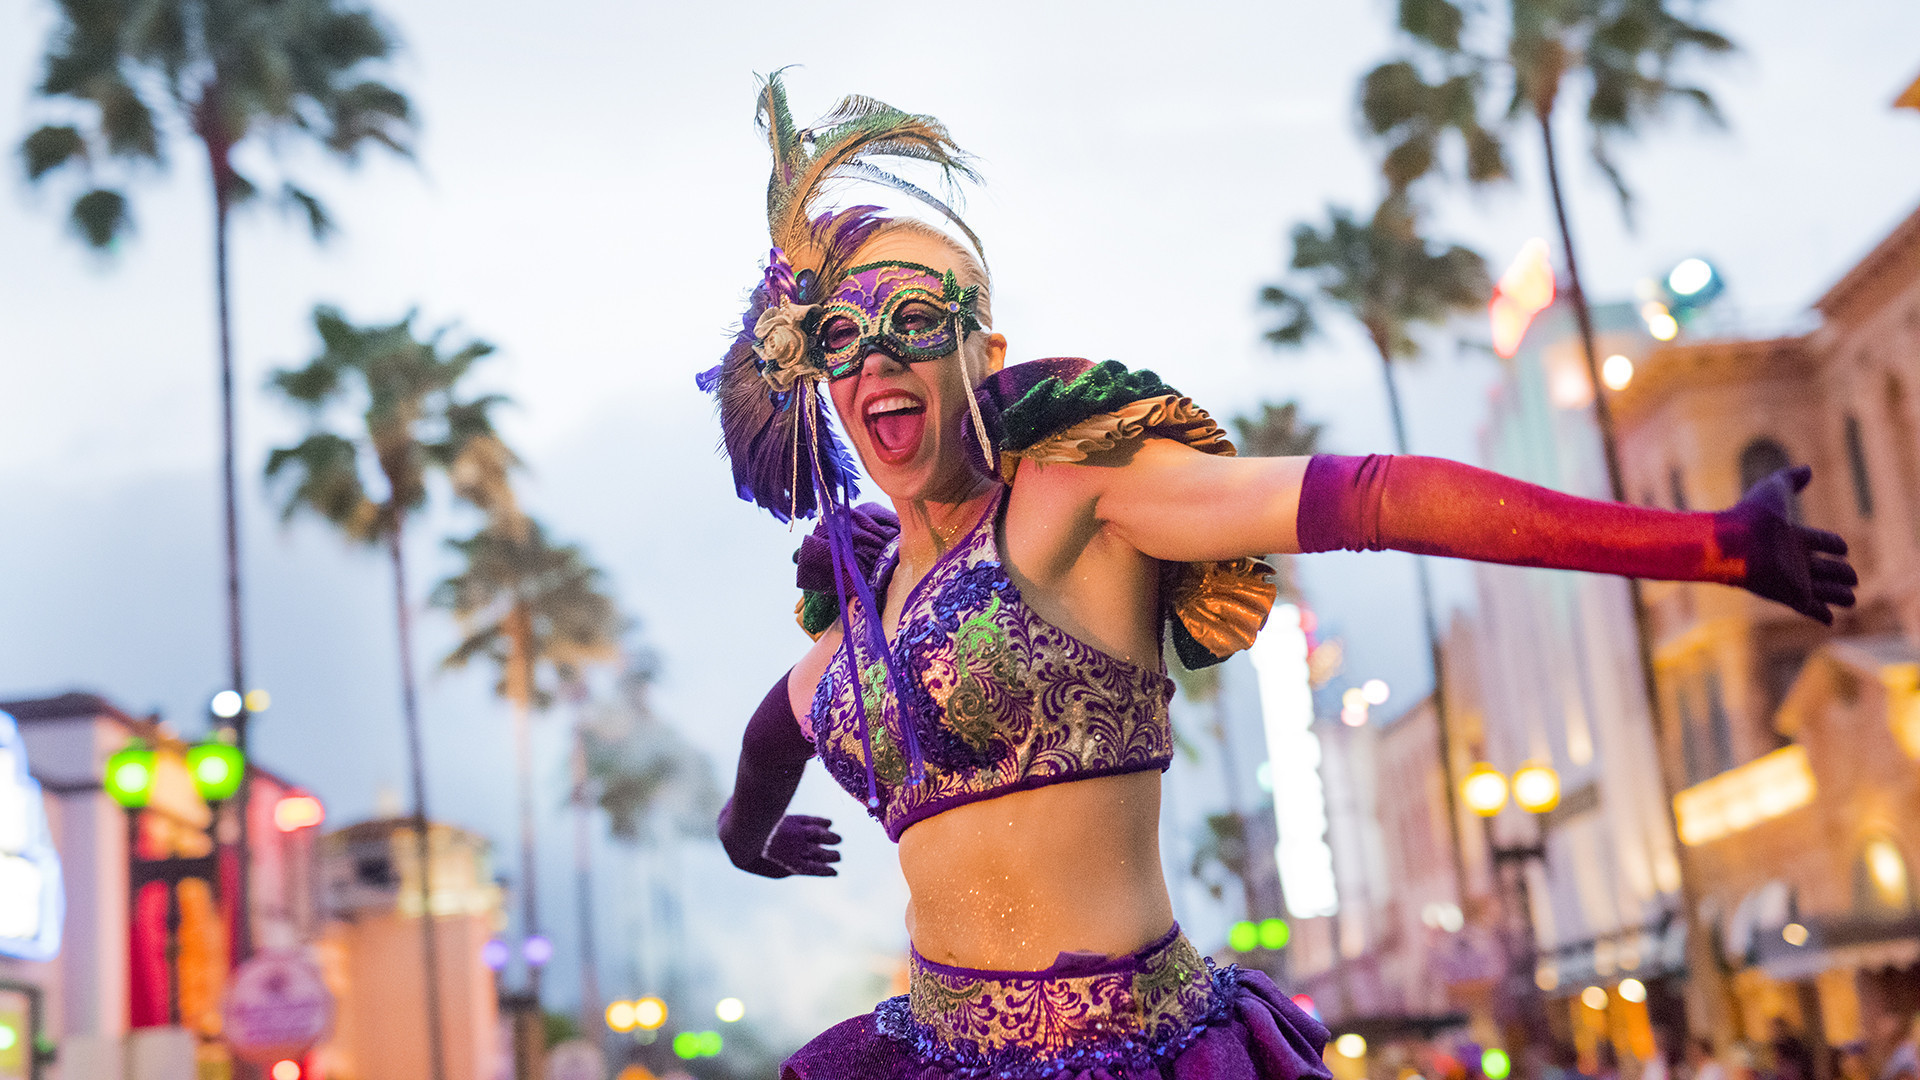 It's Florida's Biggest Party – Universal Orlando's Mardi Gras